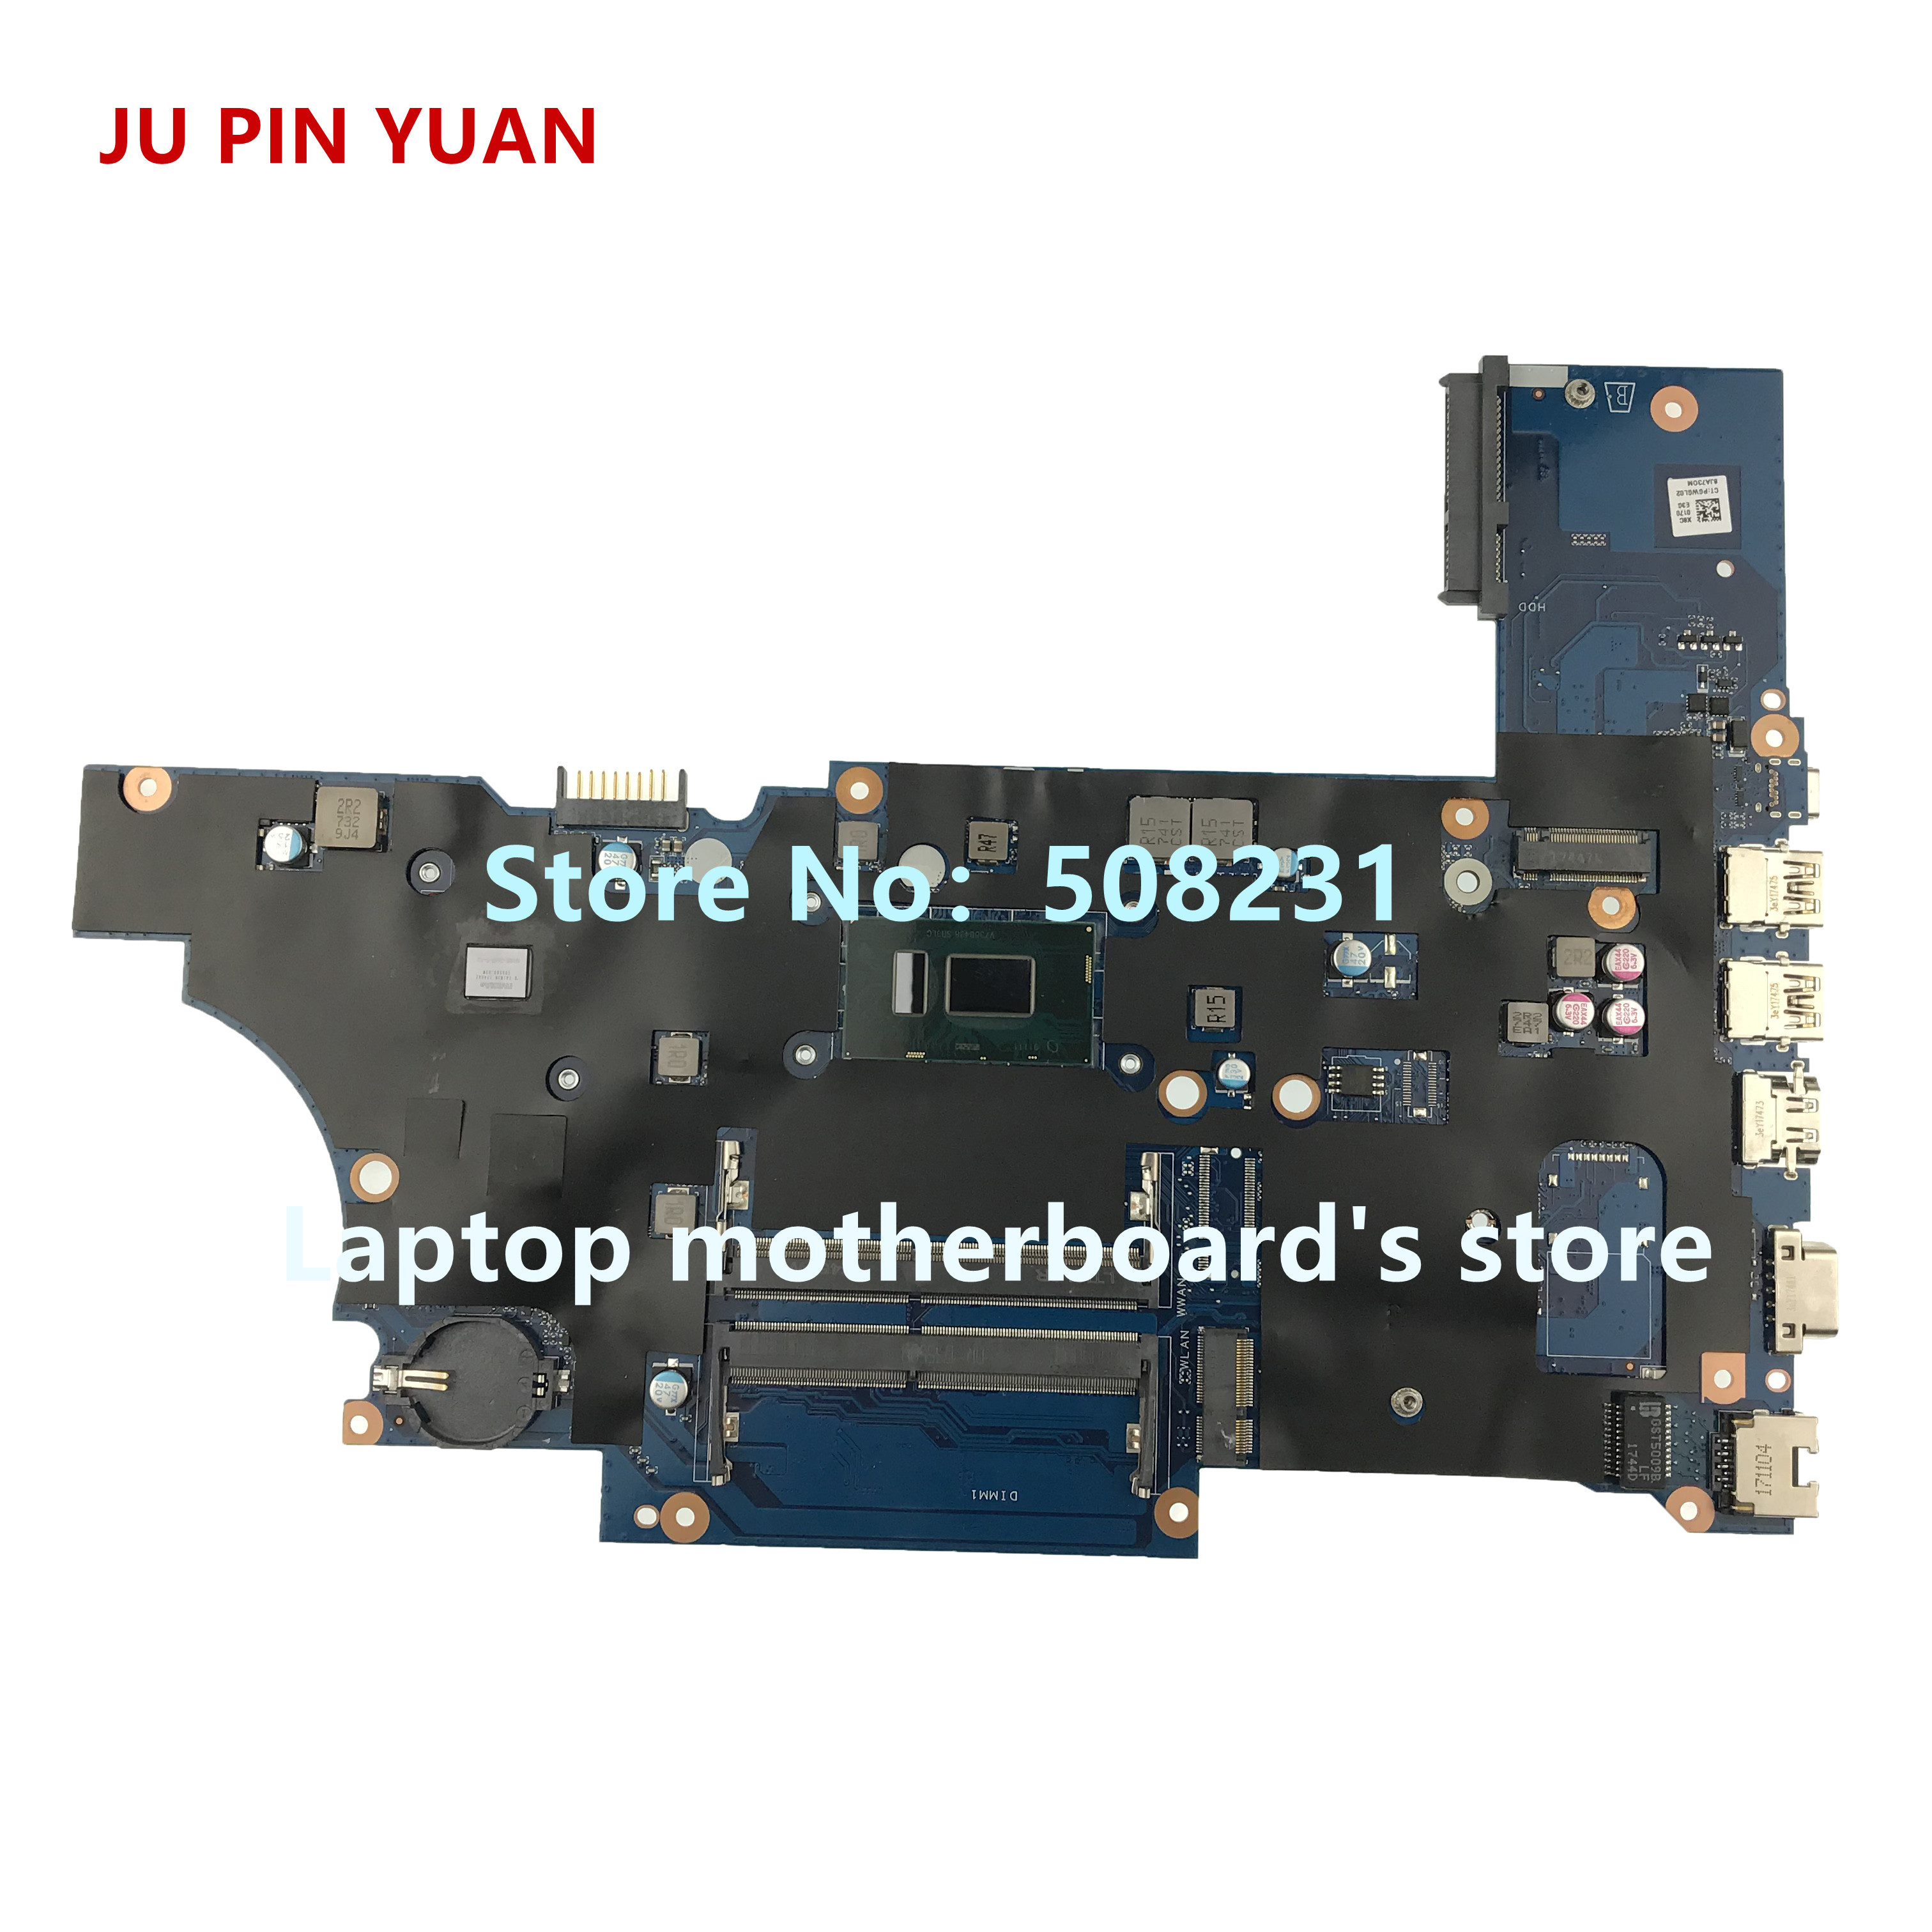 Ju Pin Yuan L00824-601 L00824-001 Da0x8cmb6e0 Laptop Motherboard For Hp Probook 450 G5 Notebook I5-8250u Fully Tested Laptop Accessories Laptop Motherboard